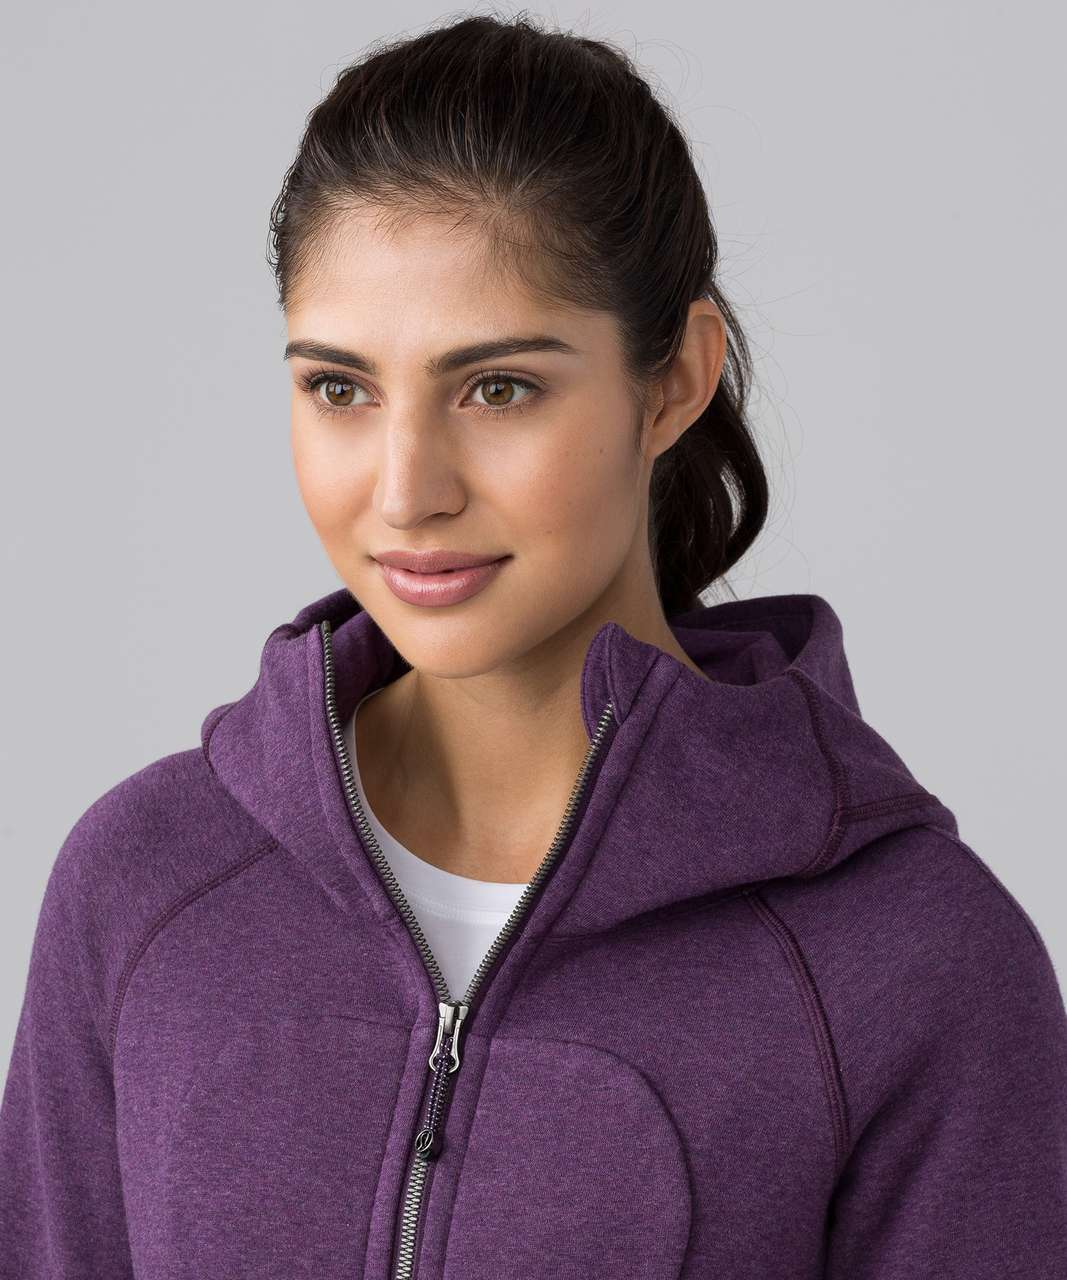 Lululemon Scuba Hoodie *Classic Cotton Fleece - Heathered Darkest Magenta